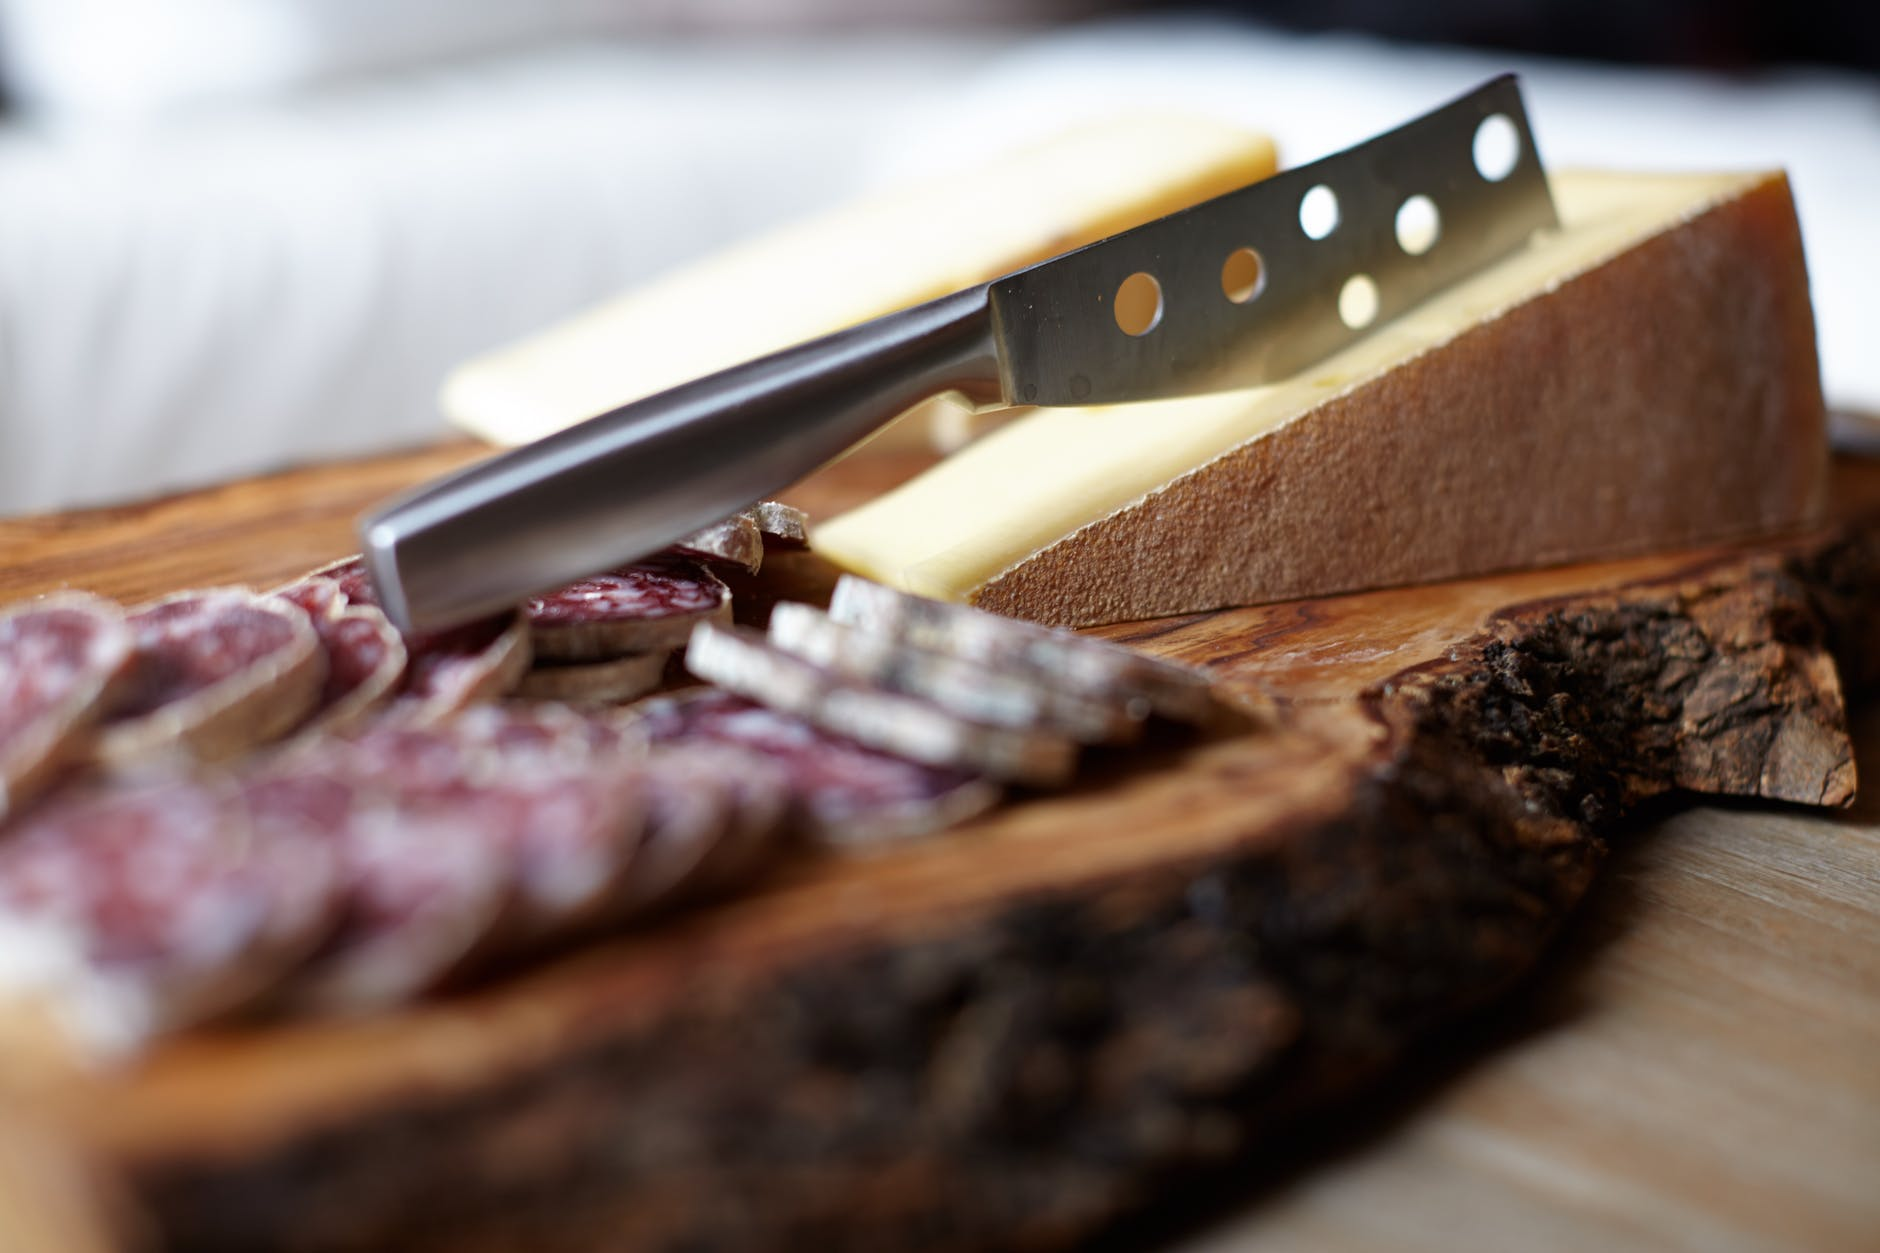 Steel knife on chopping board.